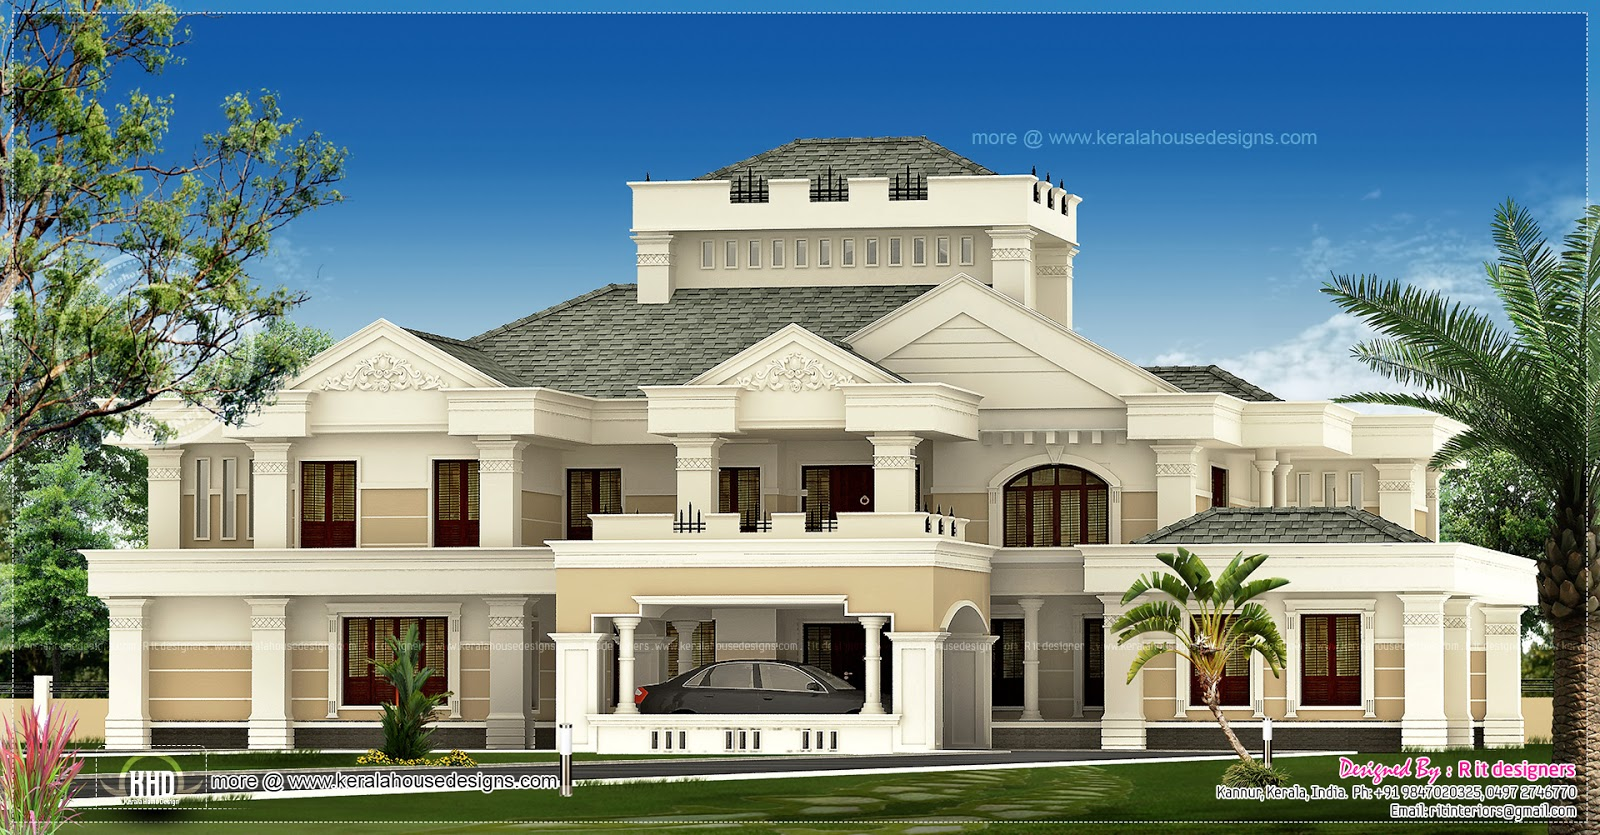 Super luxury kerala house exterior kerala home design for Executive house plans